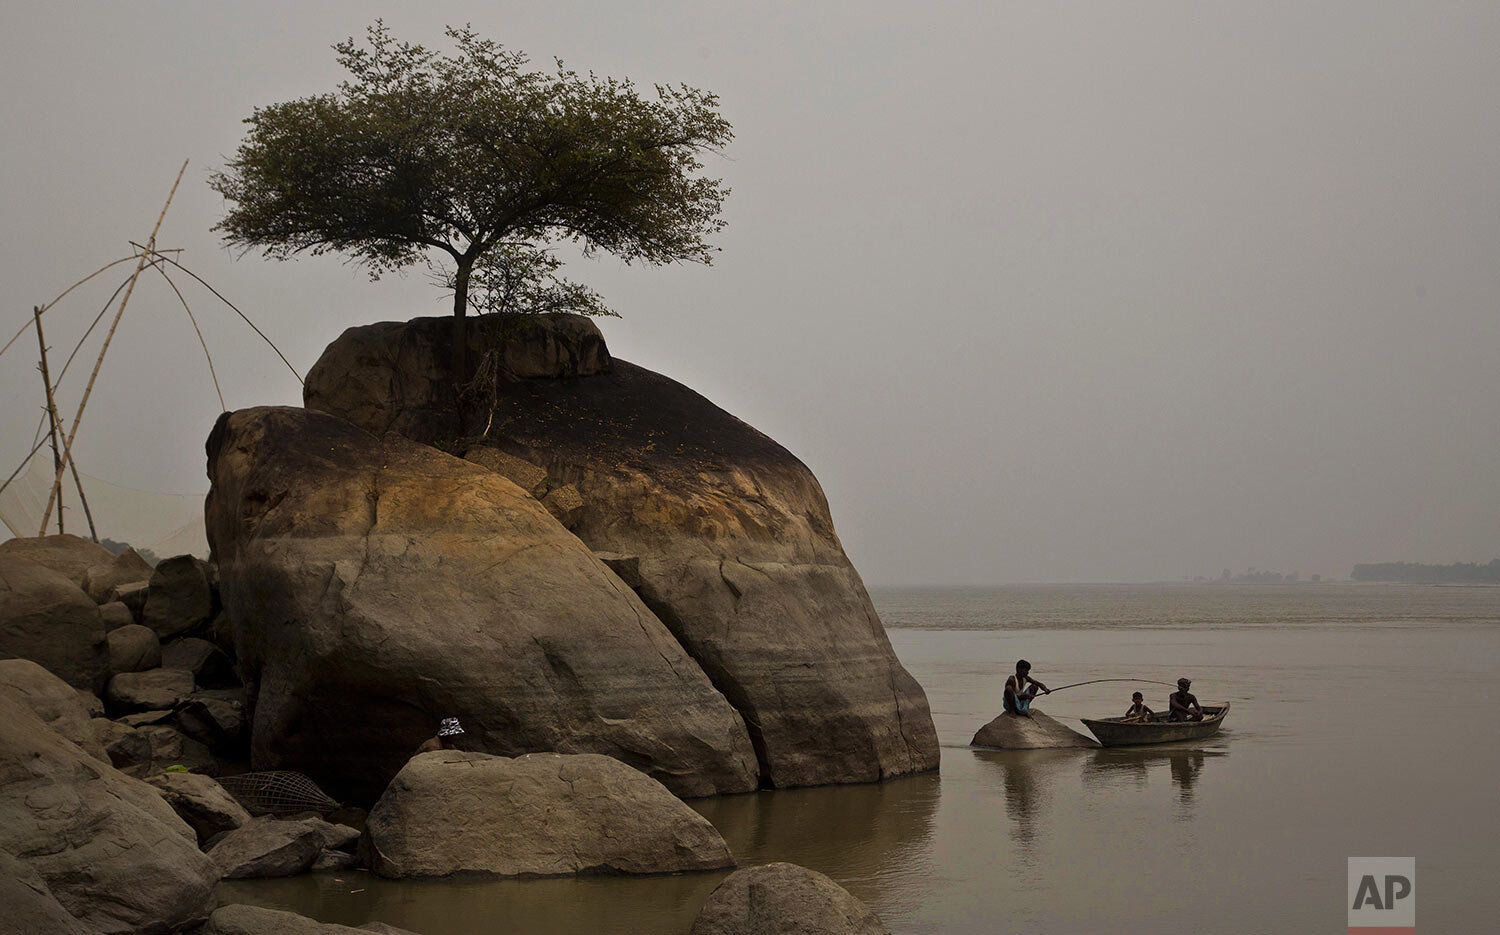 A fisherman sits on a rock to catch fish in the river Brahmaputra in Kasoshila village on the outskirts of Gauhati, India, Monday, Oct. 21, 2019. (AP Photo/Anupam Nath)